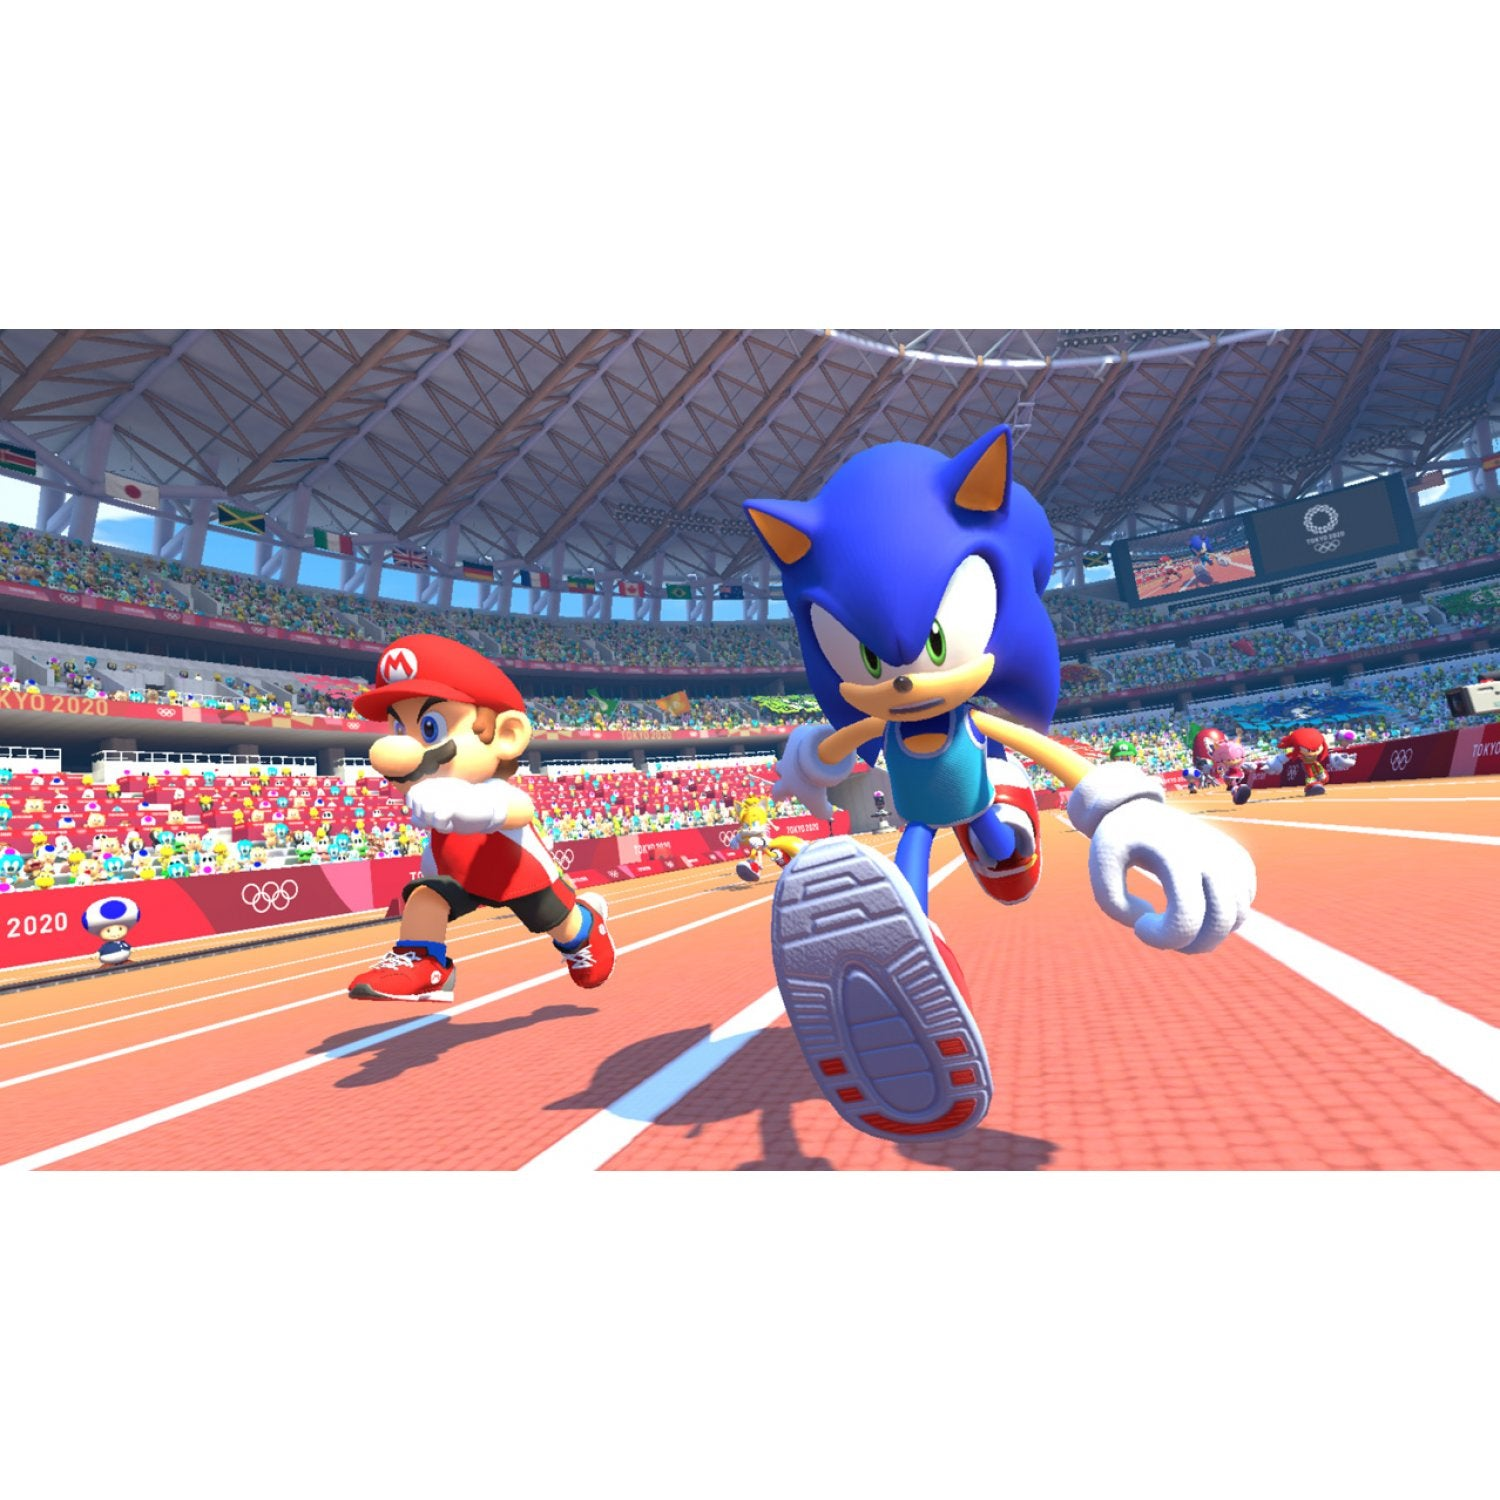 NSW Mario & Sonic at the Olympic Games Tokyo 2020